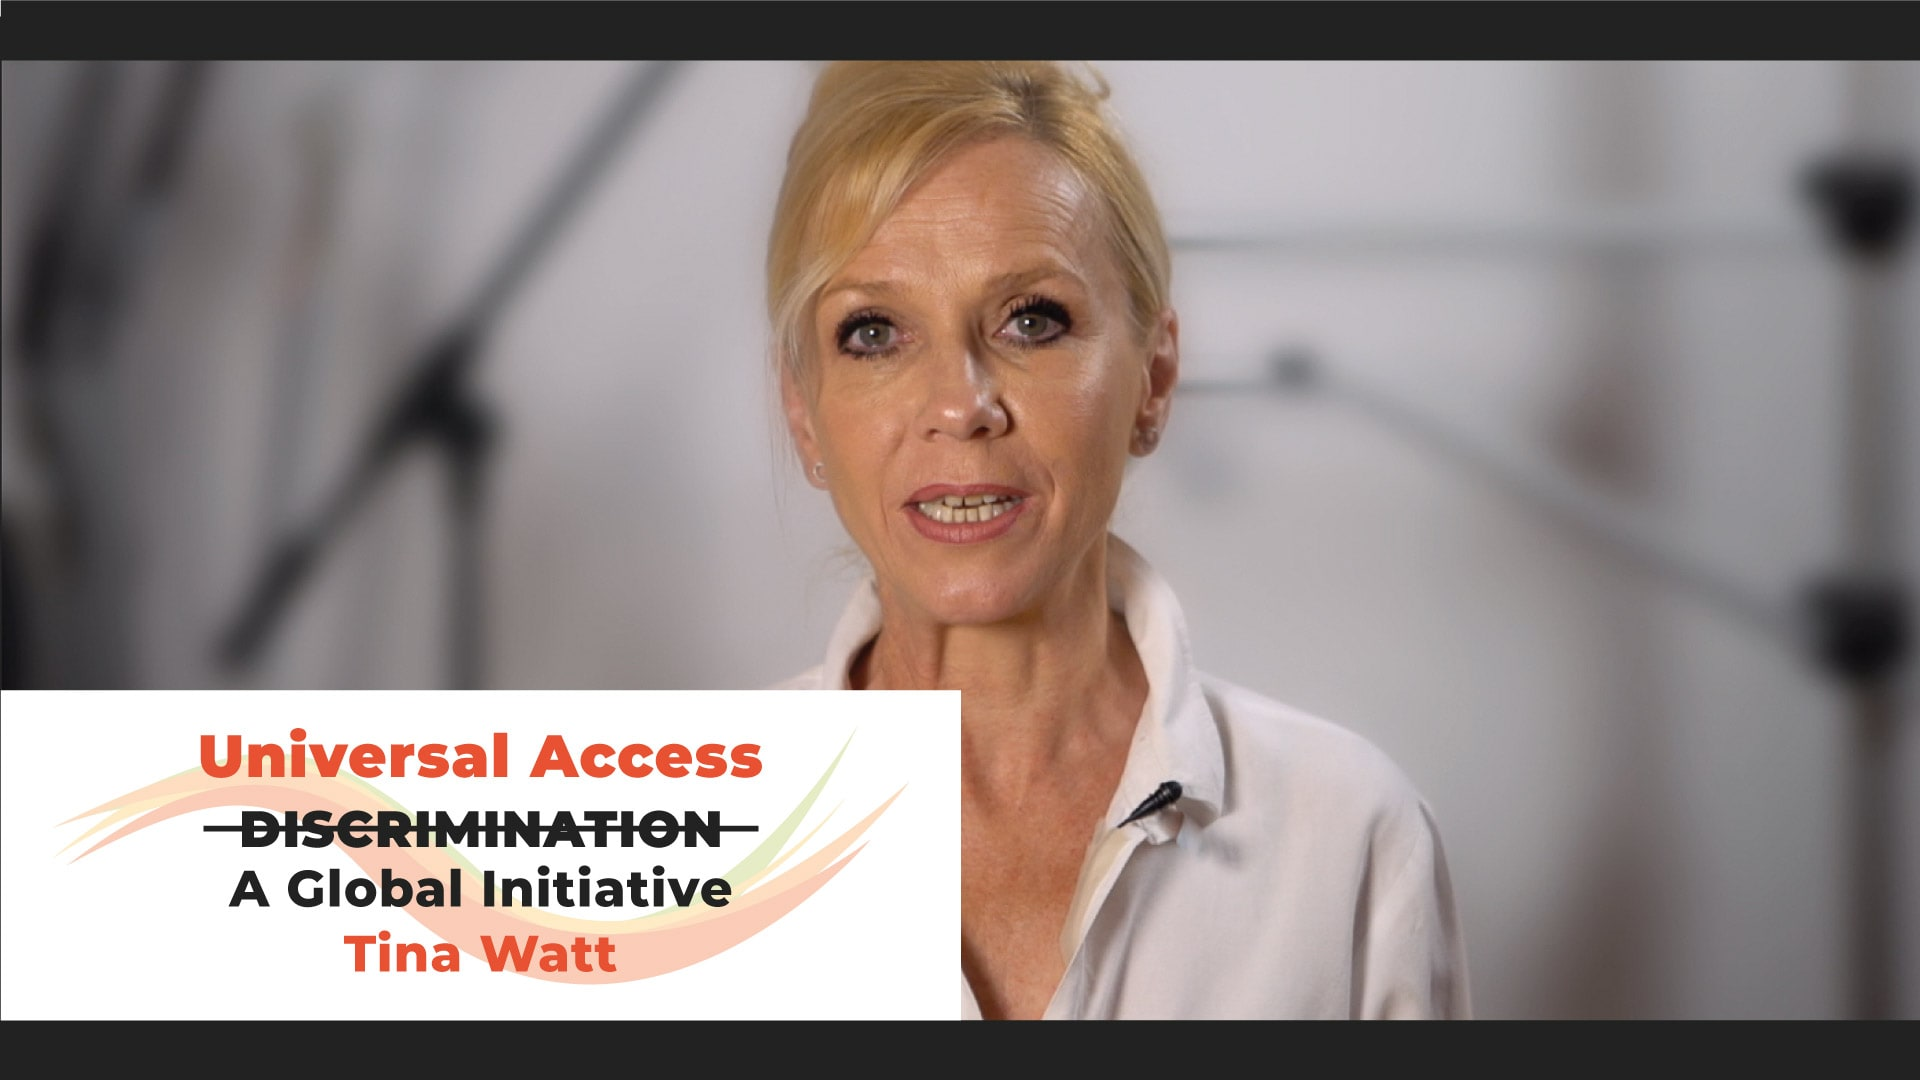 DISCRIMINATION? A Global Initiative. Universal access and Inclusivity